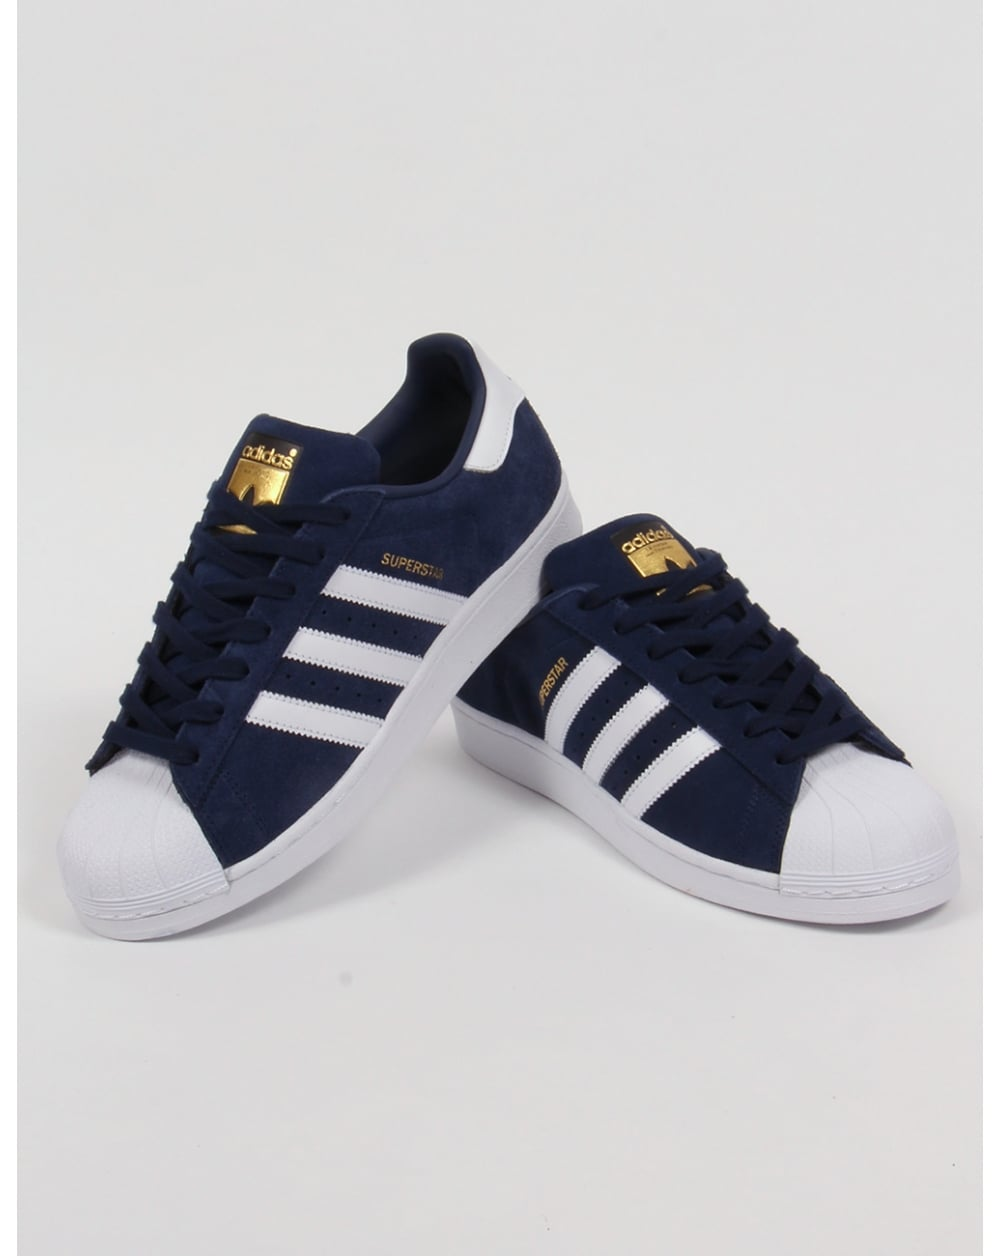 adidas superstar navy